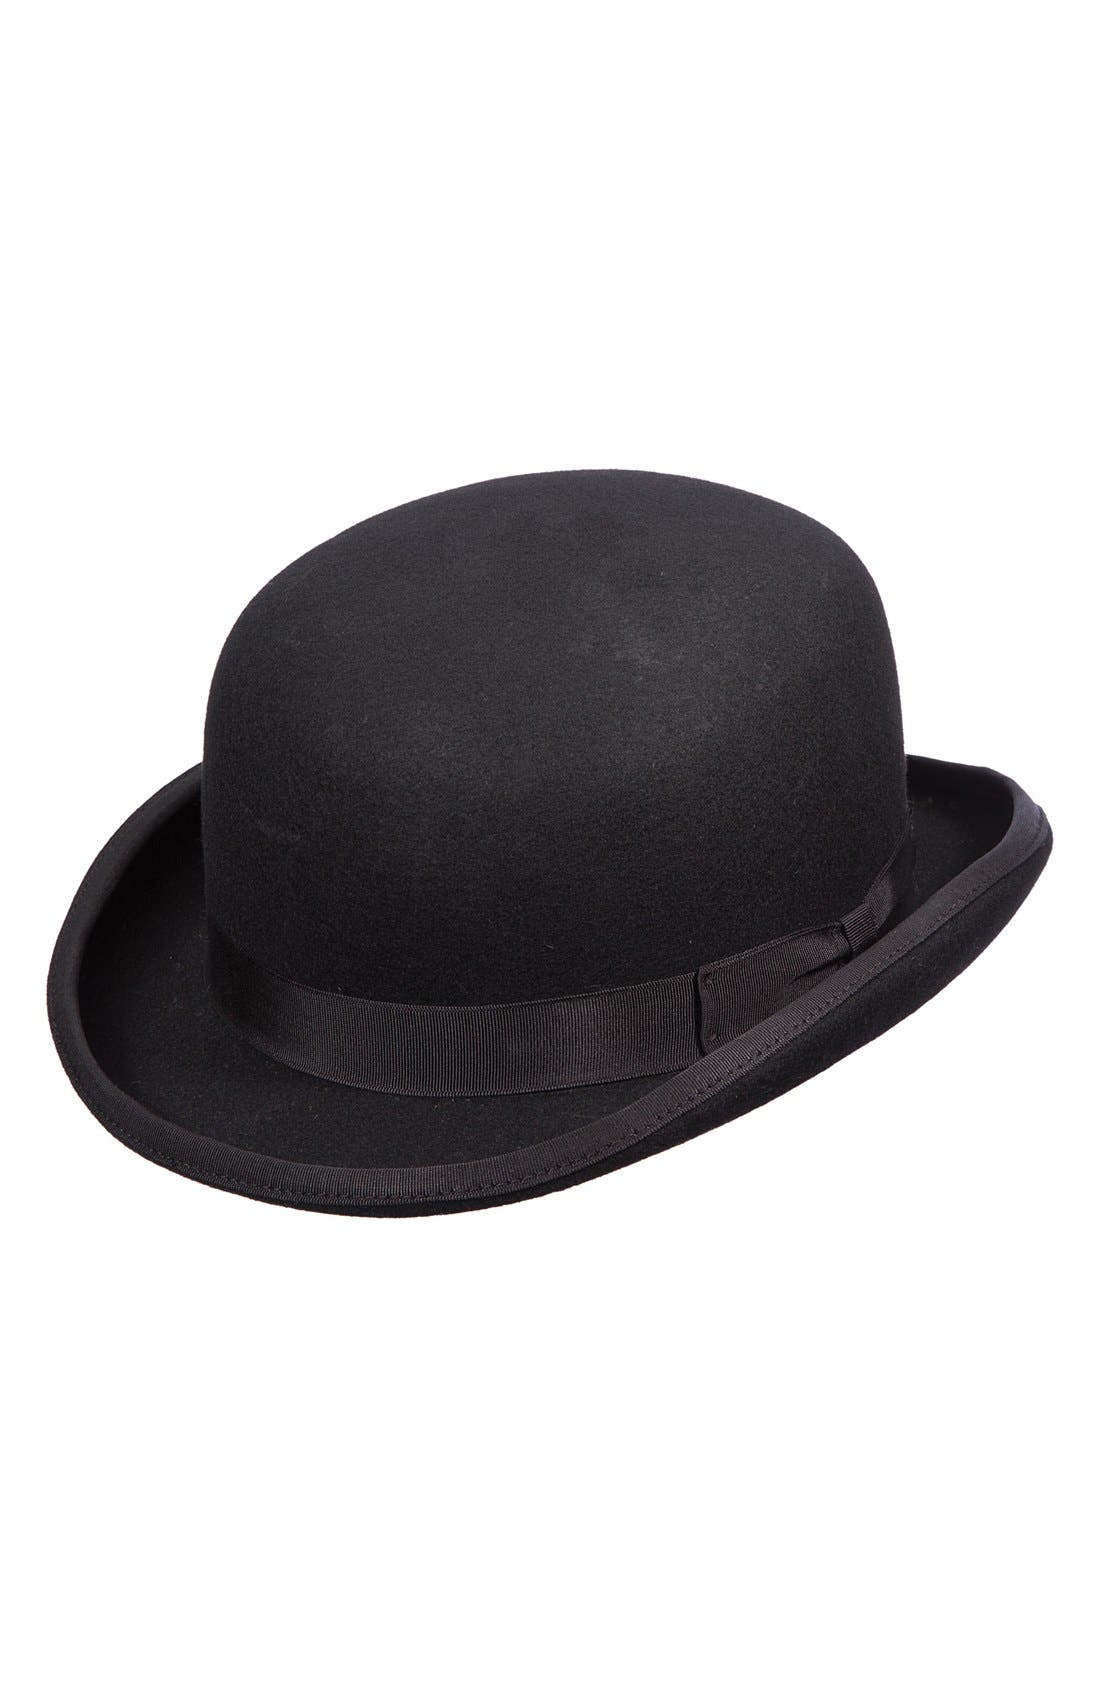 1920s Mens Hats & Caps | Gatsby, Peaky Blinders, Gangster Mens Scala Wool Felt Bowler Hat - Black $51.00 AT vintagedancer.com